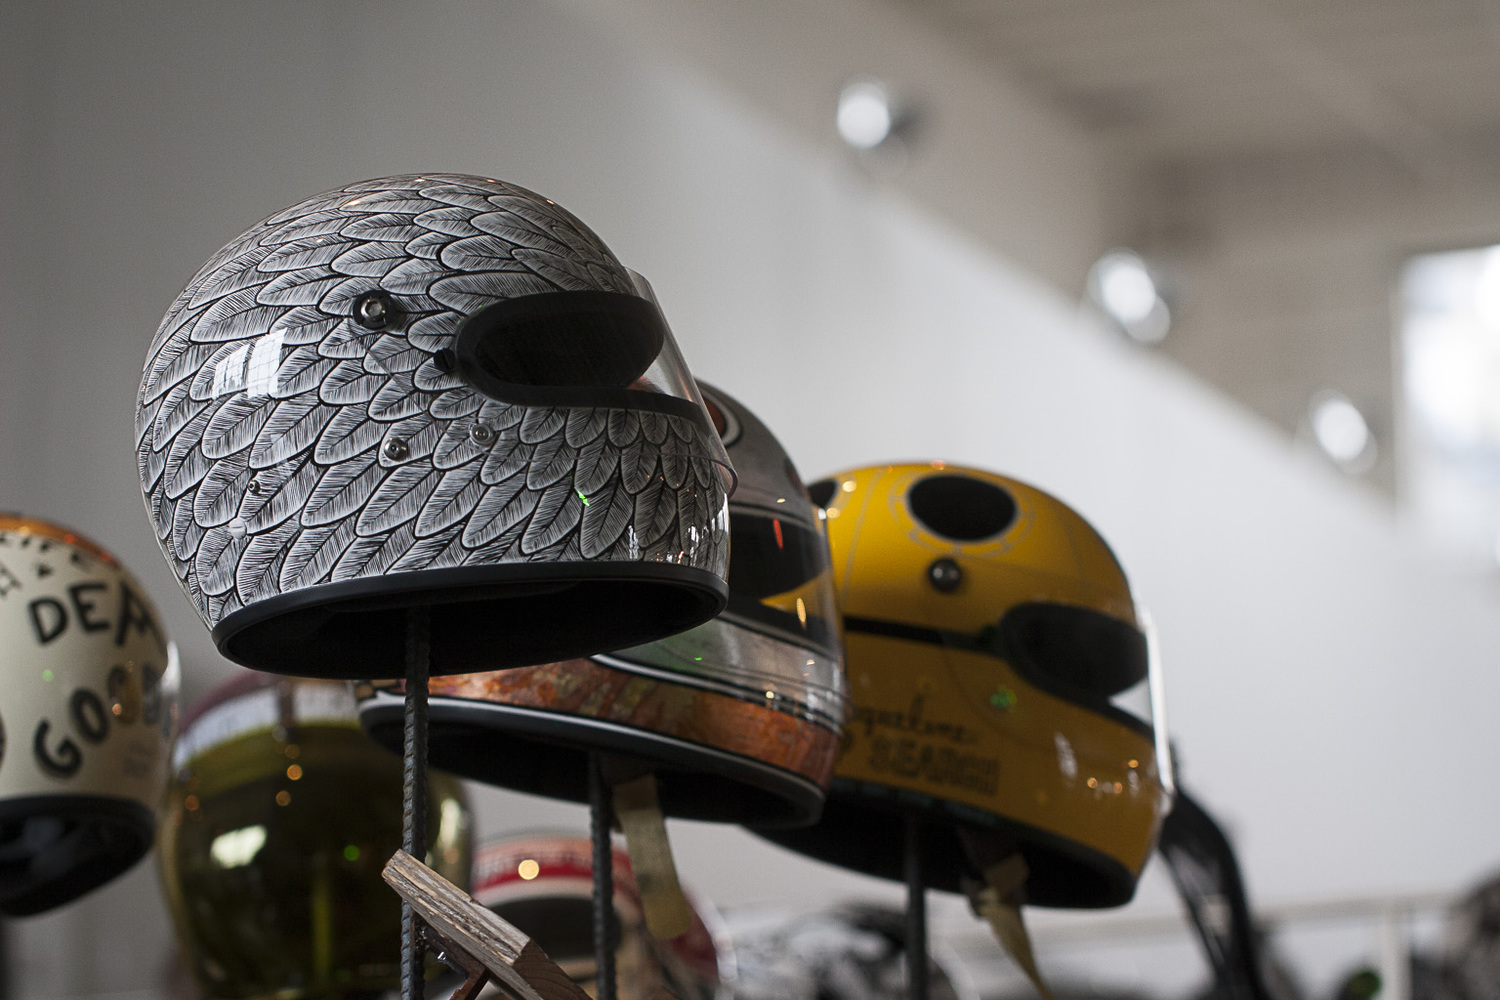 Casque - Page 4 Ironandair_MG_3313_MG_3313